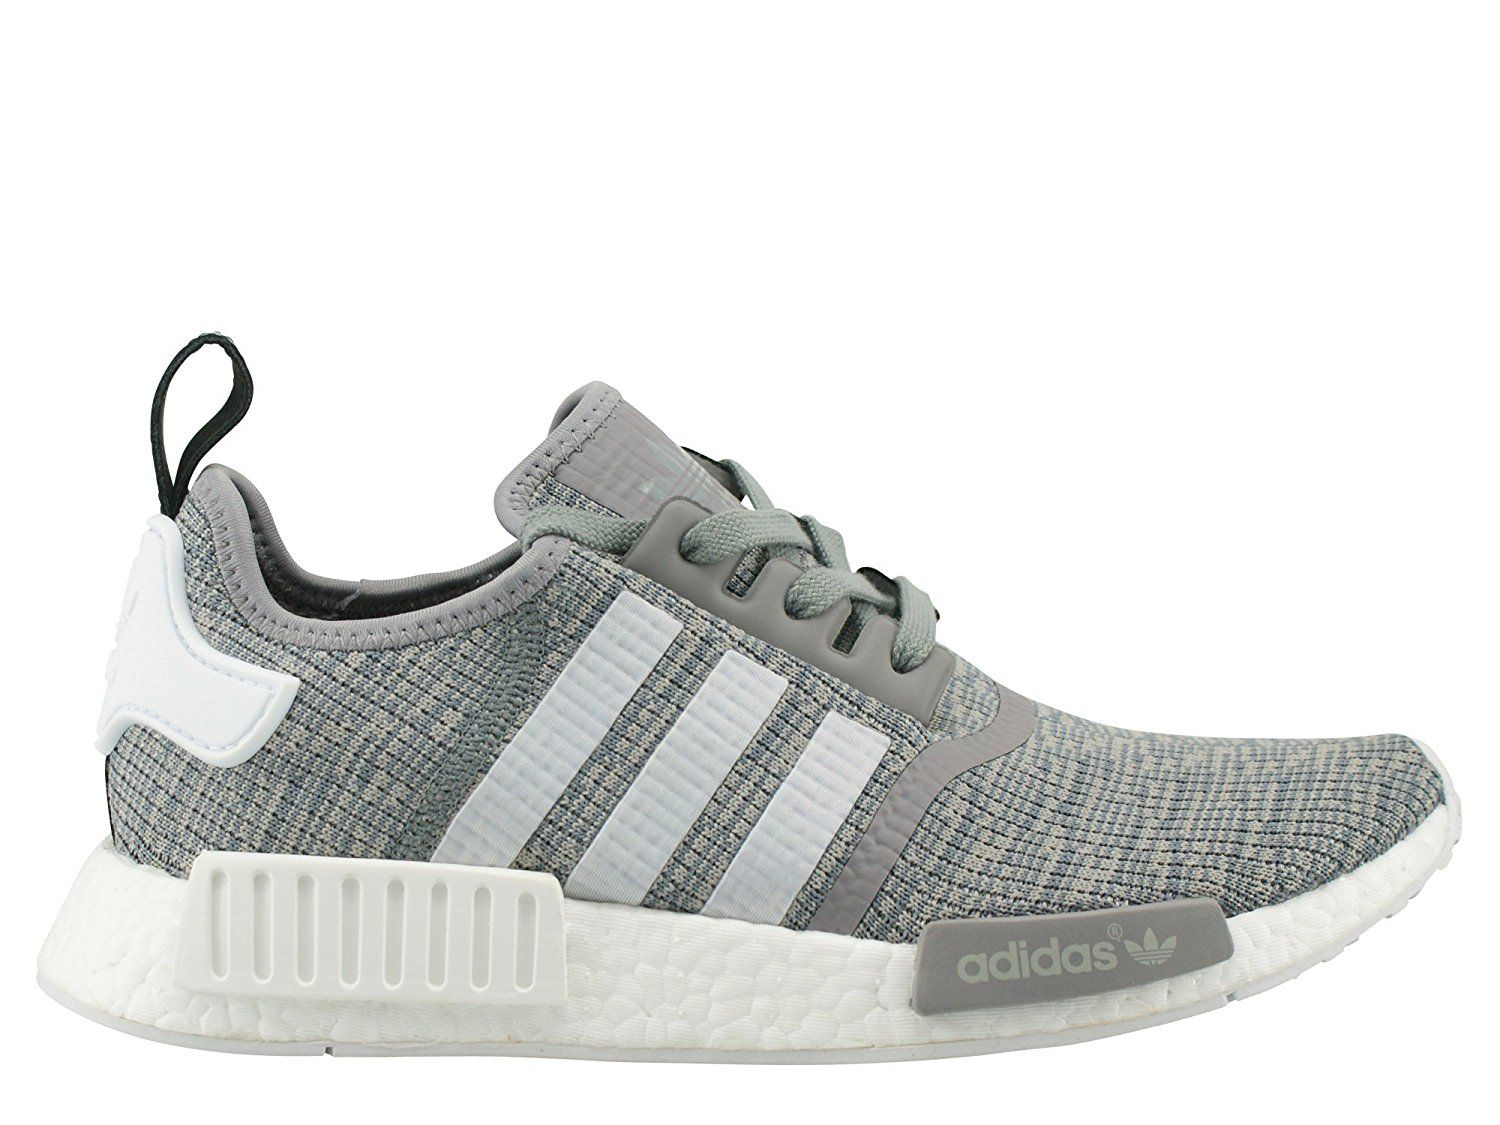 adidas Men Shoes / Sneakers NMD R1 grey